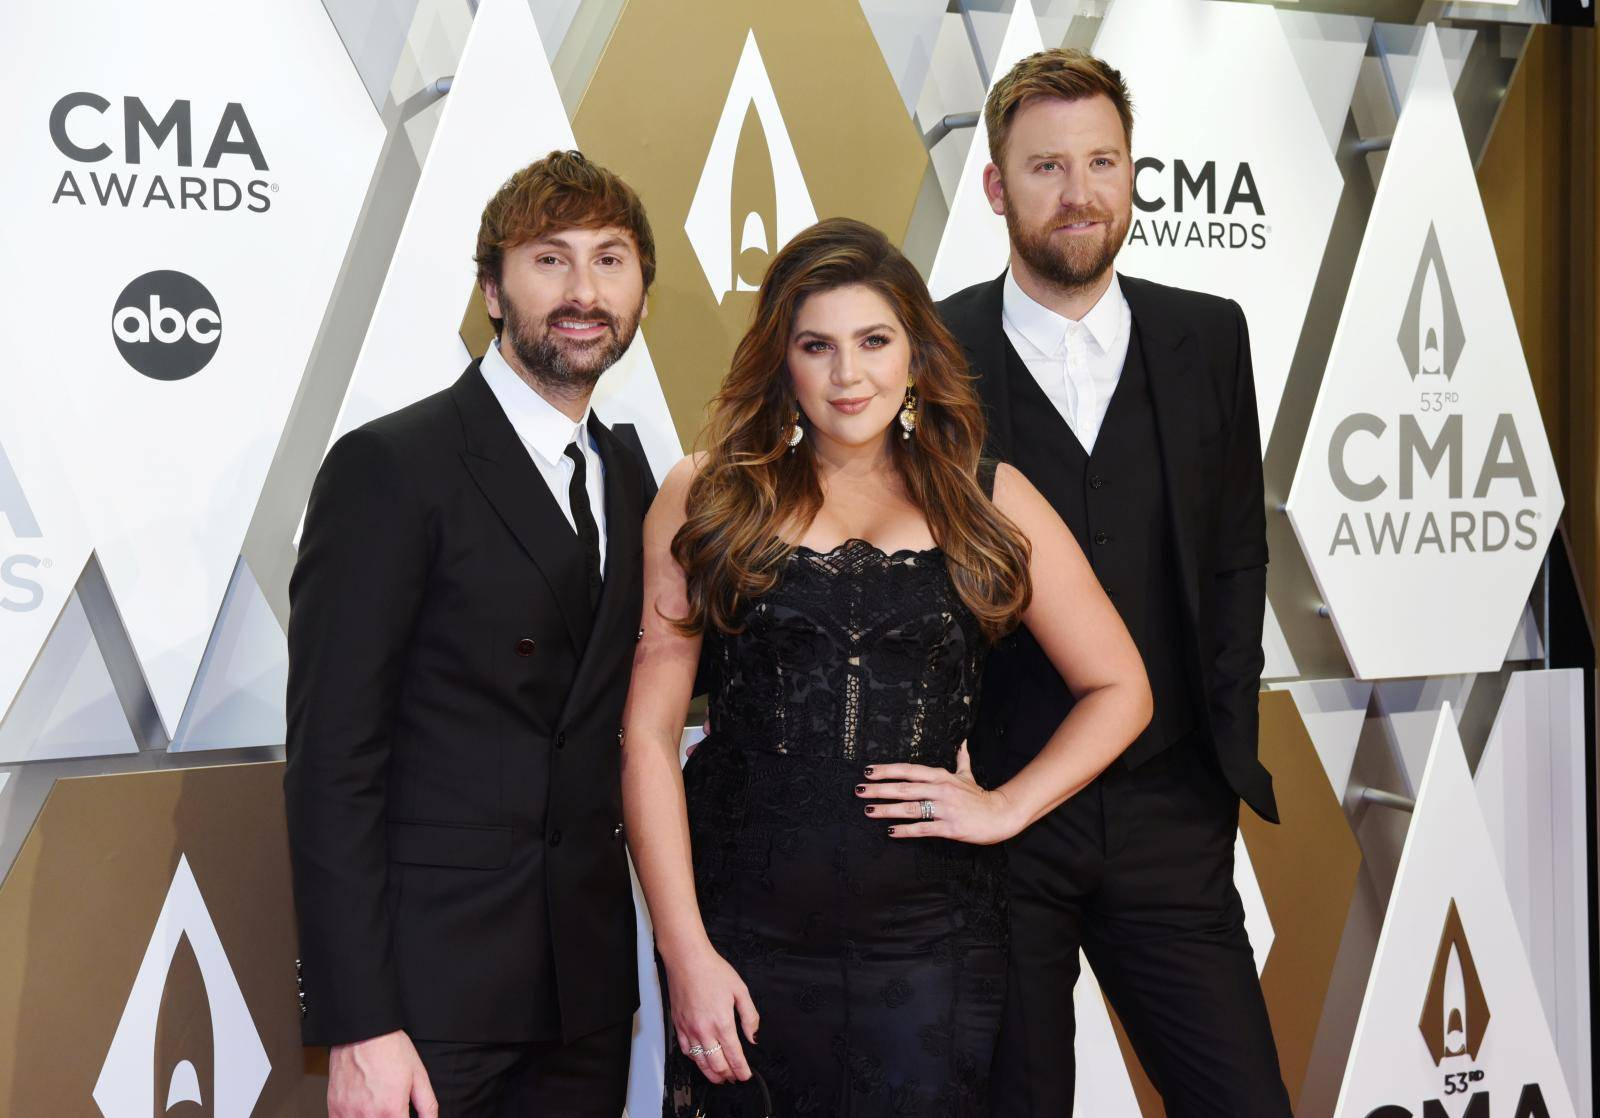 FILE PHOTO: The 53rd Annual CMA Awards - Arrivals - Nashville, Tennessee, U.S.